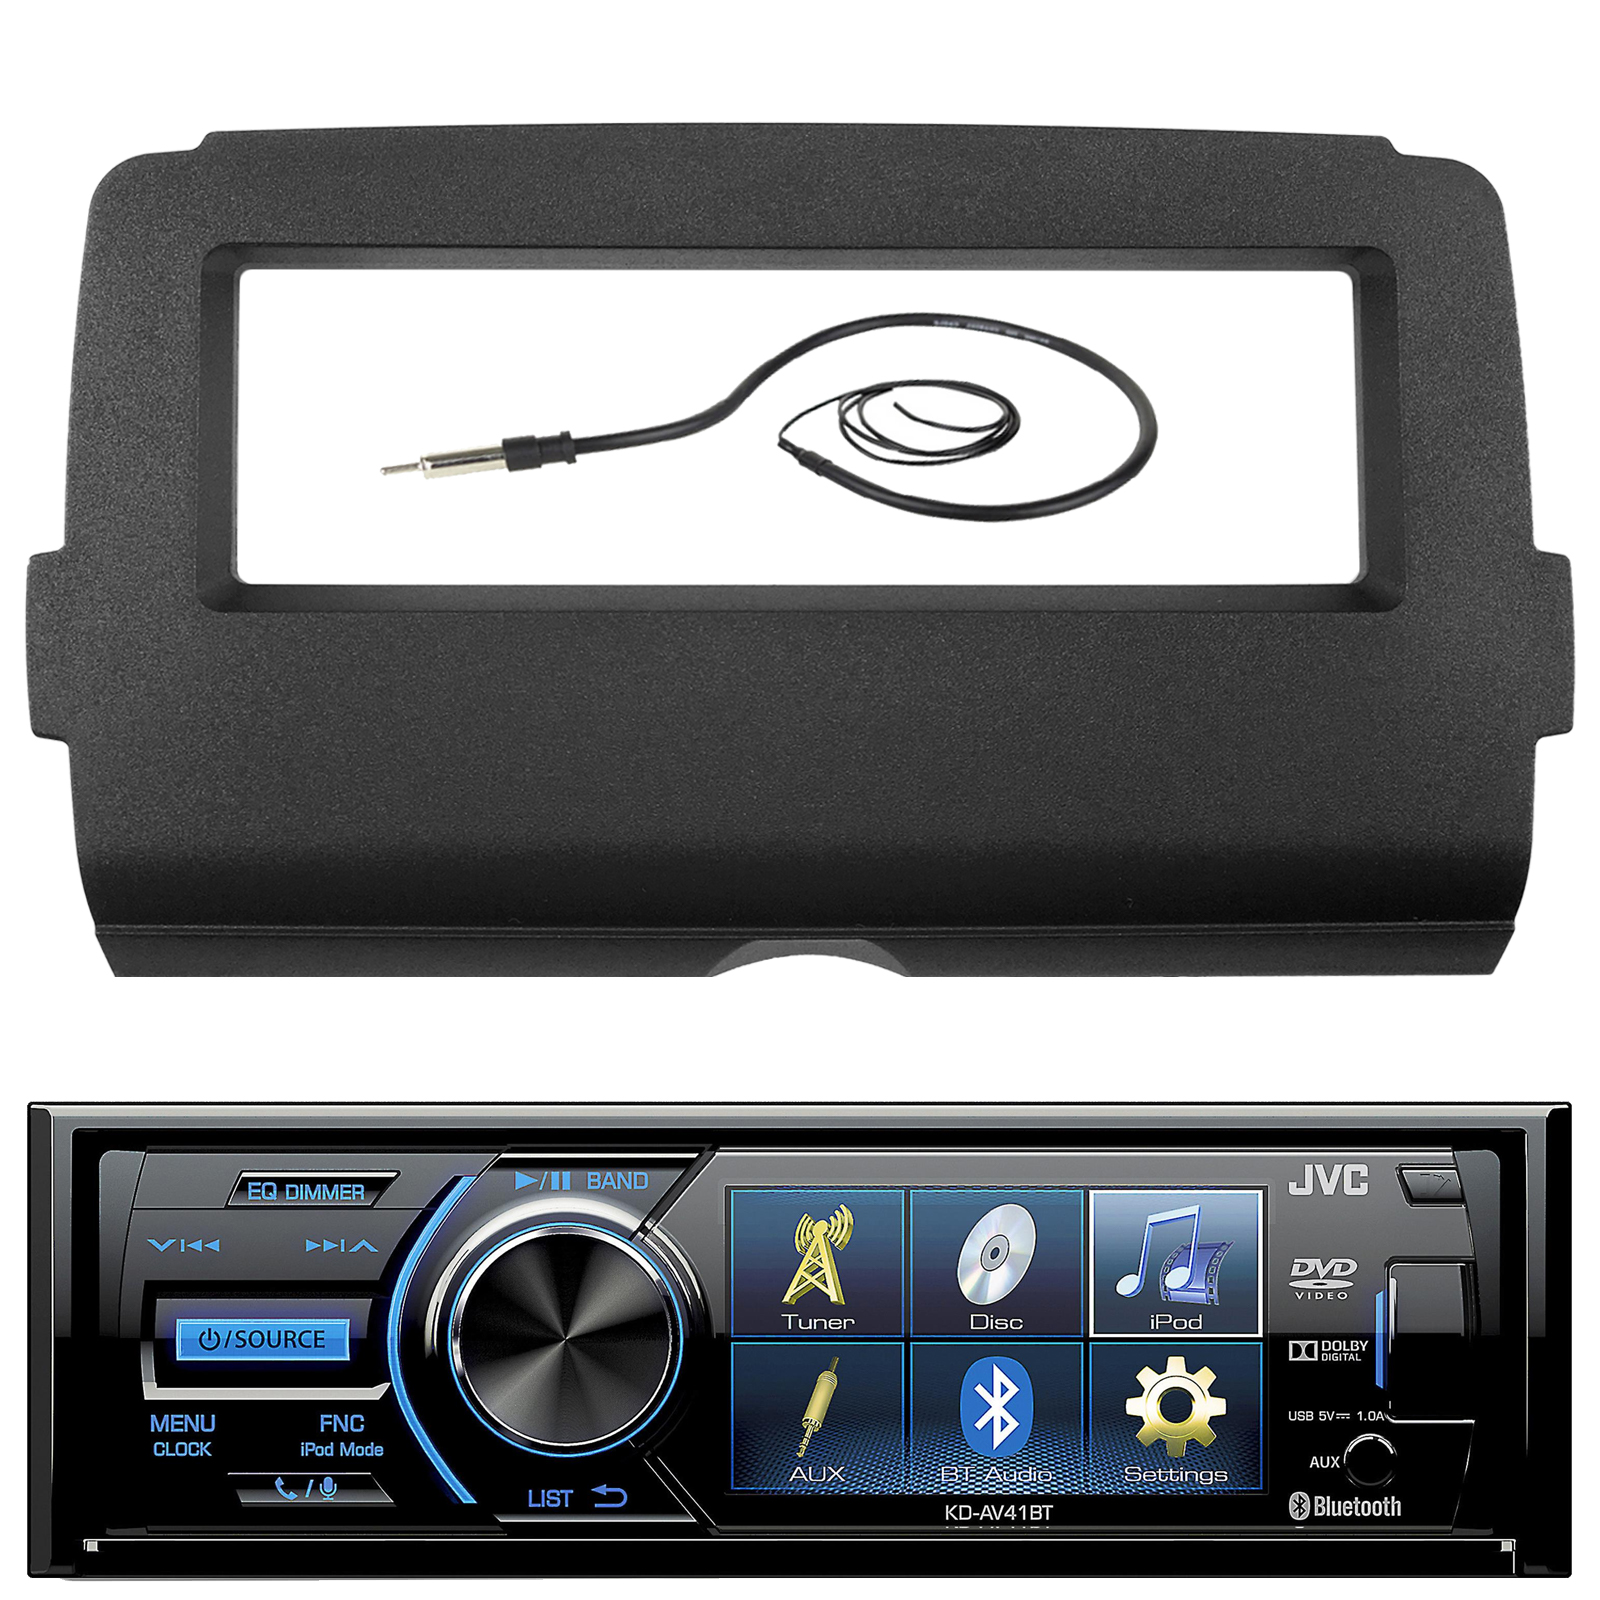 """Audio Bundle For 2014 and Up Harley - JVC KD-AV41BT 3"""" Marine DVD USB/AUX Bluetooth Stereo Receiver Combo With Dash Installation Kit for Single DIN Radios for Motorcycles, Enrock 22"""" AM/FM Antenna"""